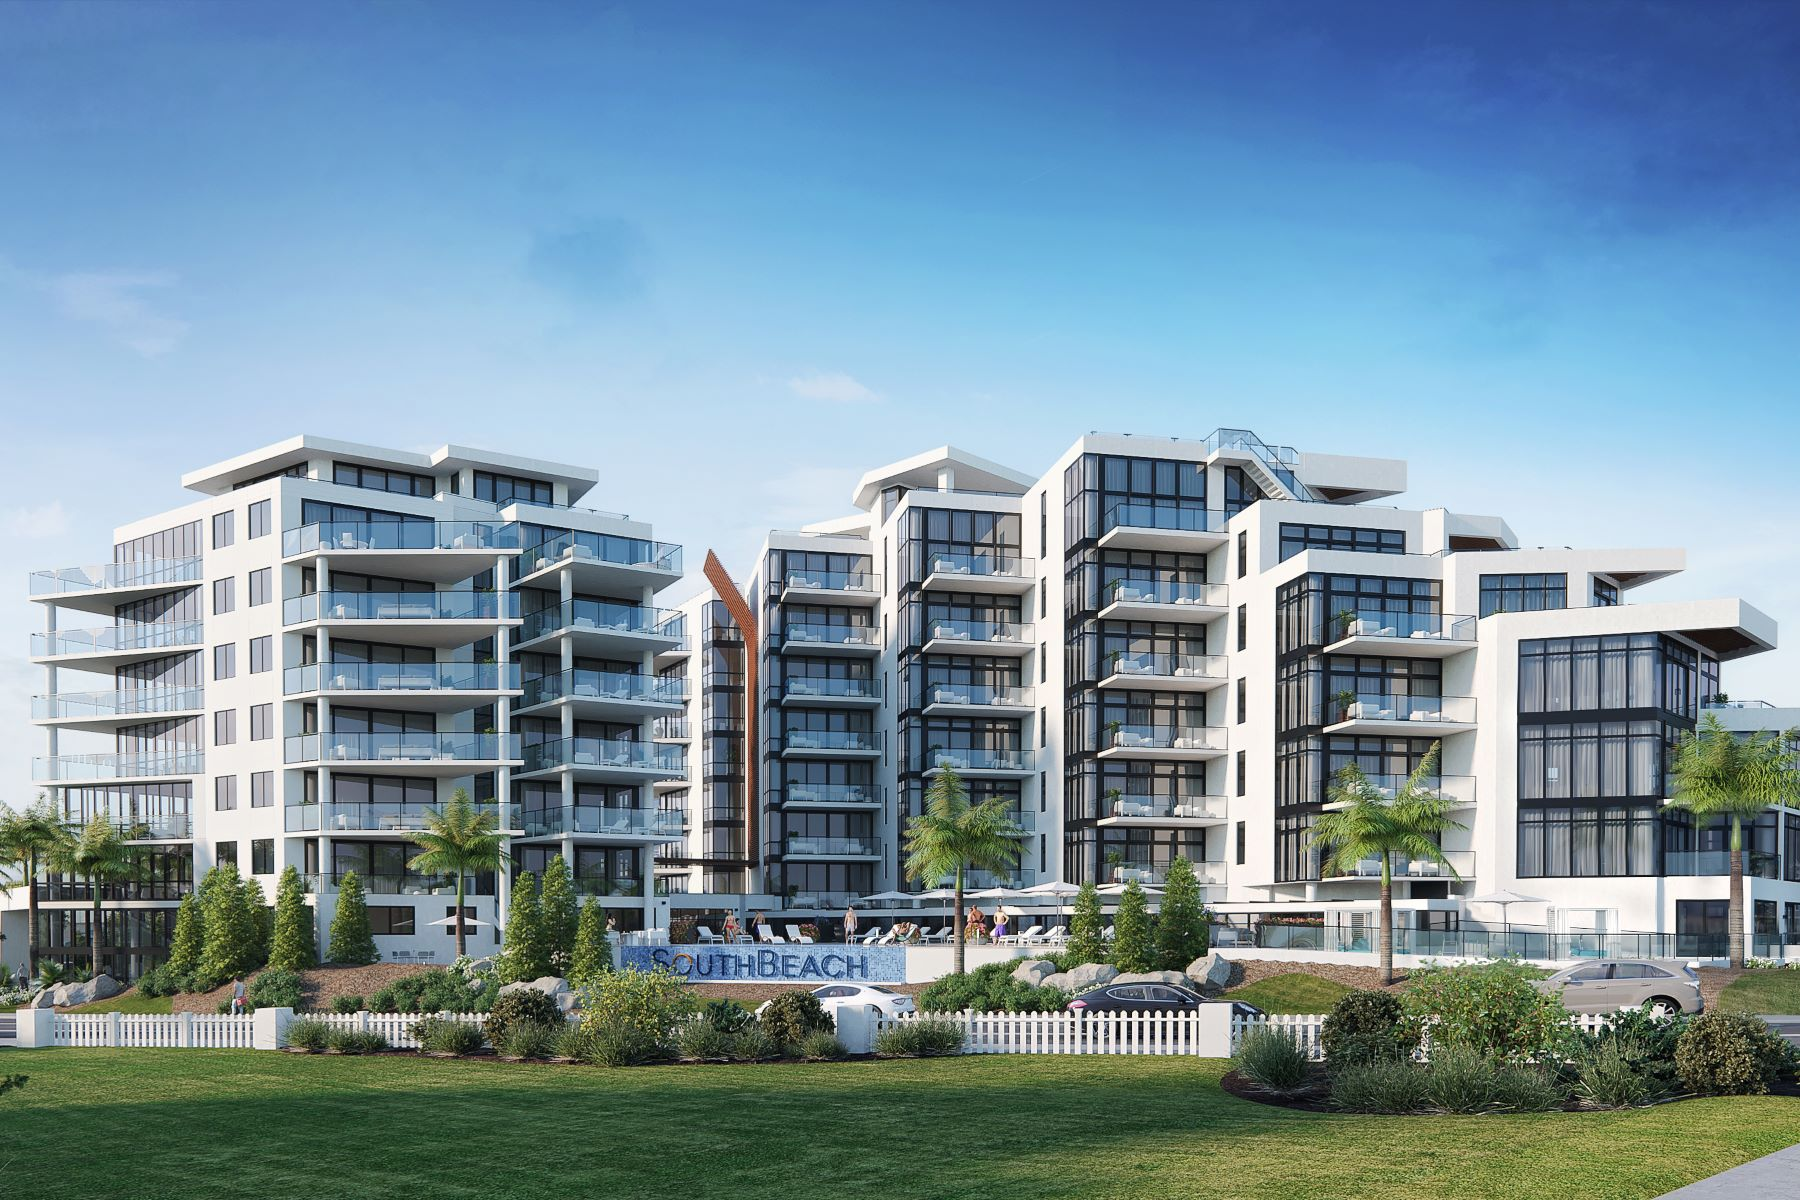 Condominiums للـ Sale في South Beach at Long Branch 350 Ocean Avenue 203, Long Branch, New Jersey 07740 United States